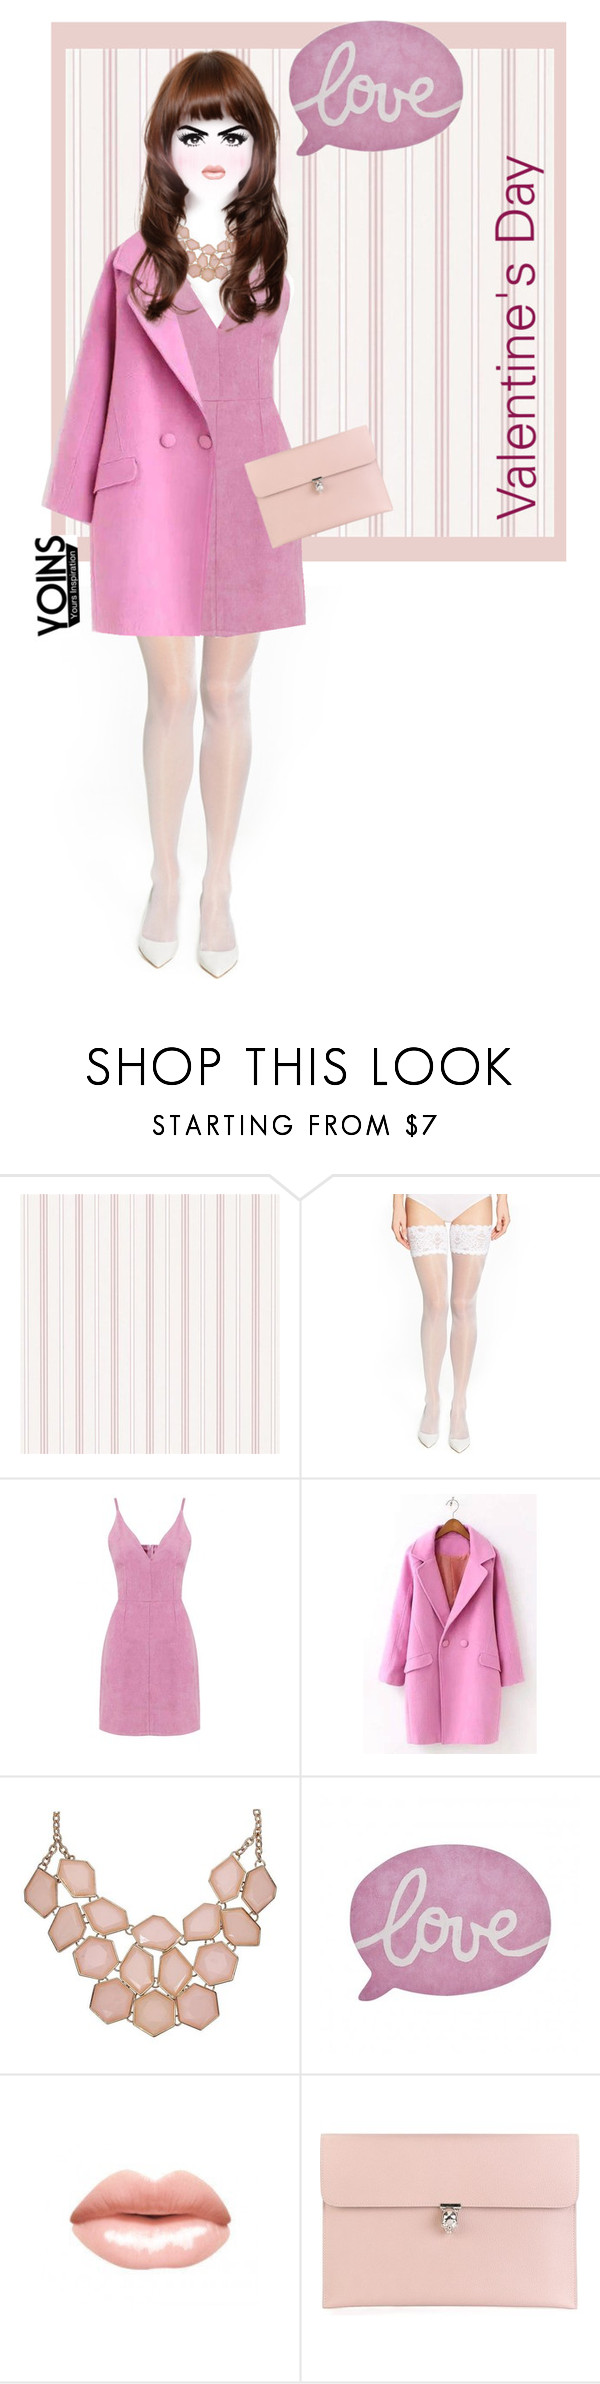 """YOINS"" by sebi86 ❤ liked on Polyvore featuring Wolford, Lilipinso, Alexander McQueen, women's clothing, women's fashion, women, female, woman, misses and juniors"